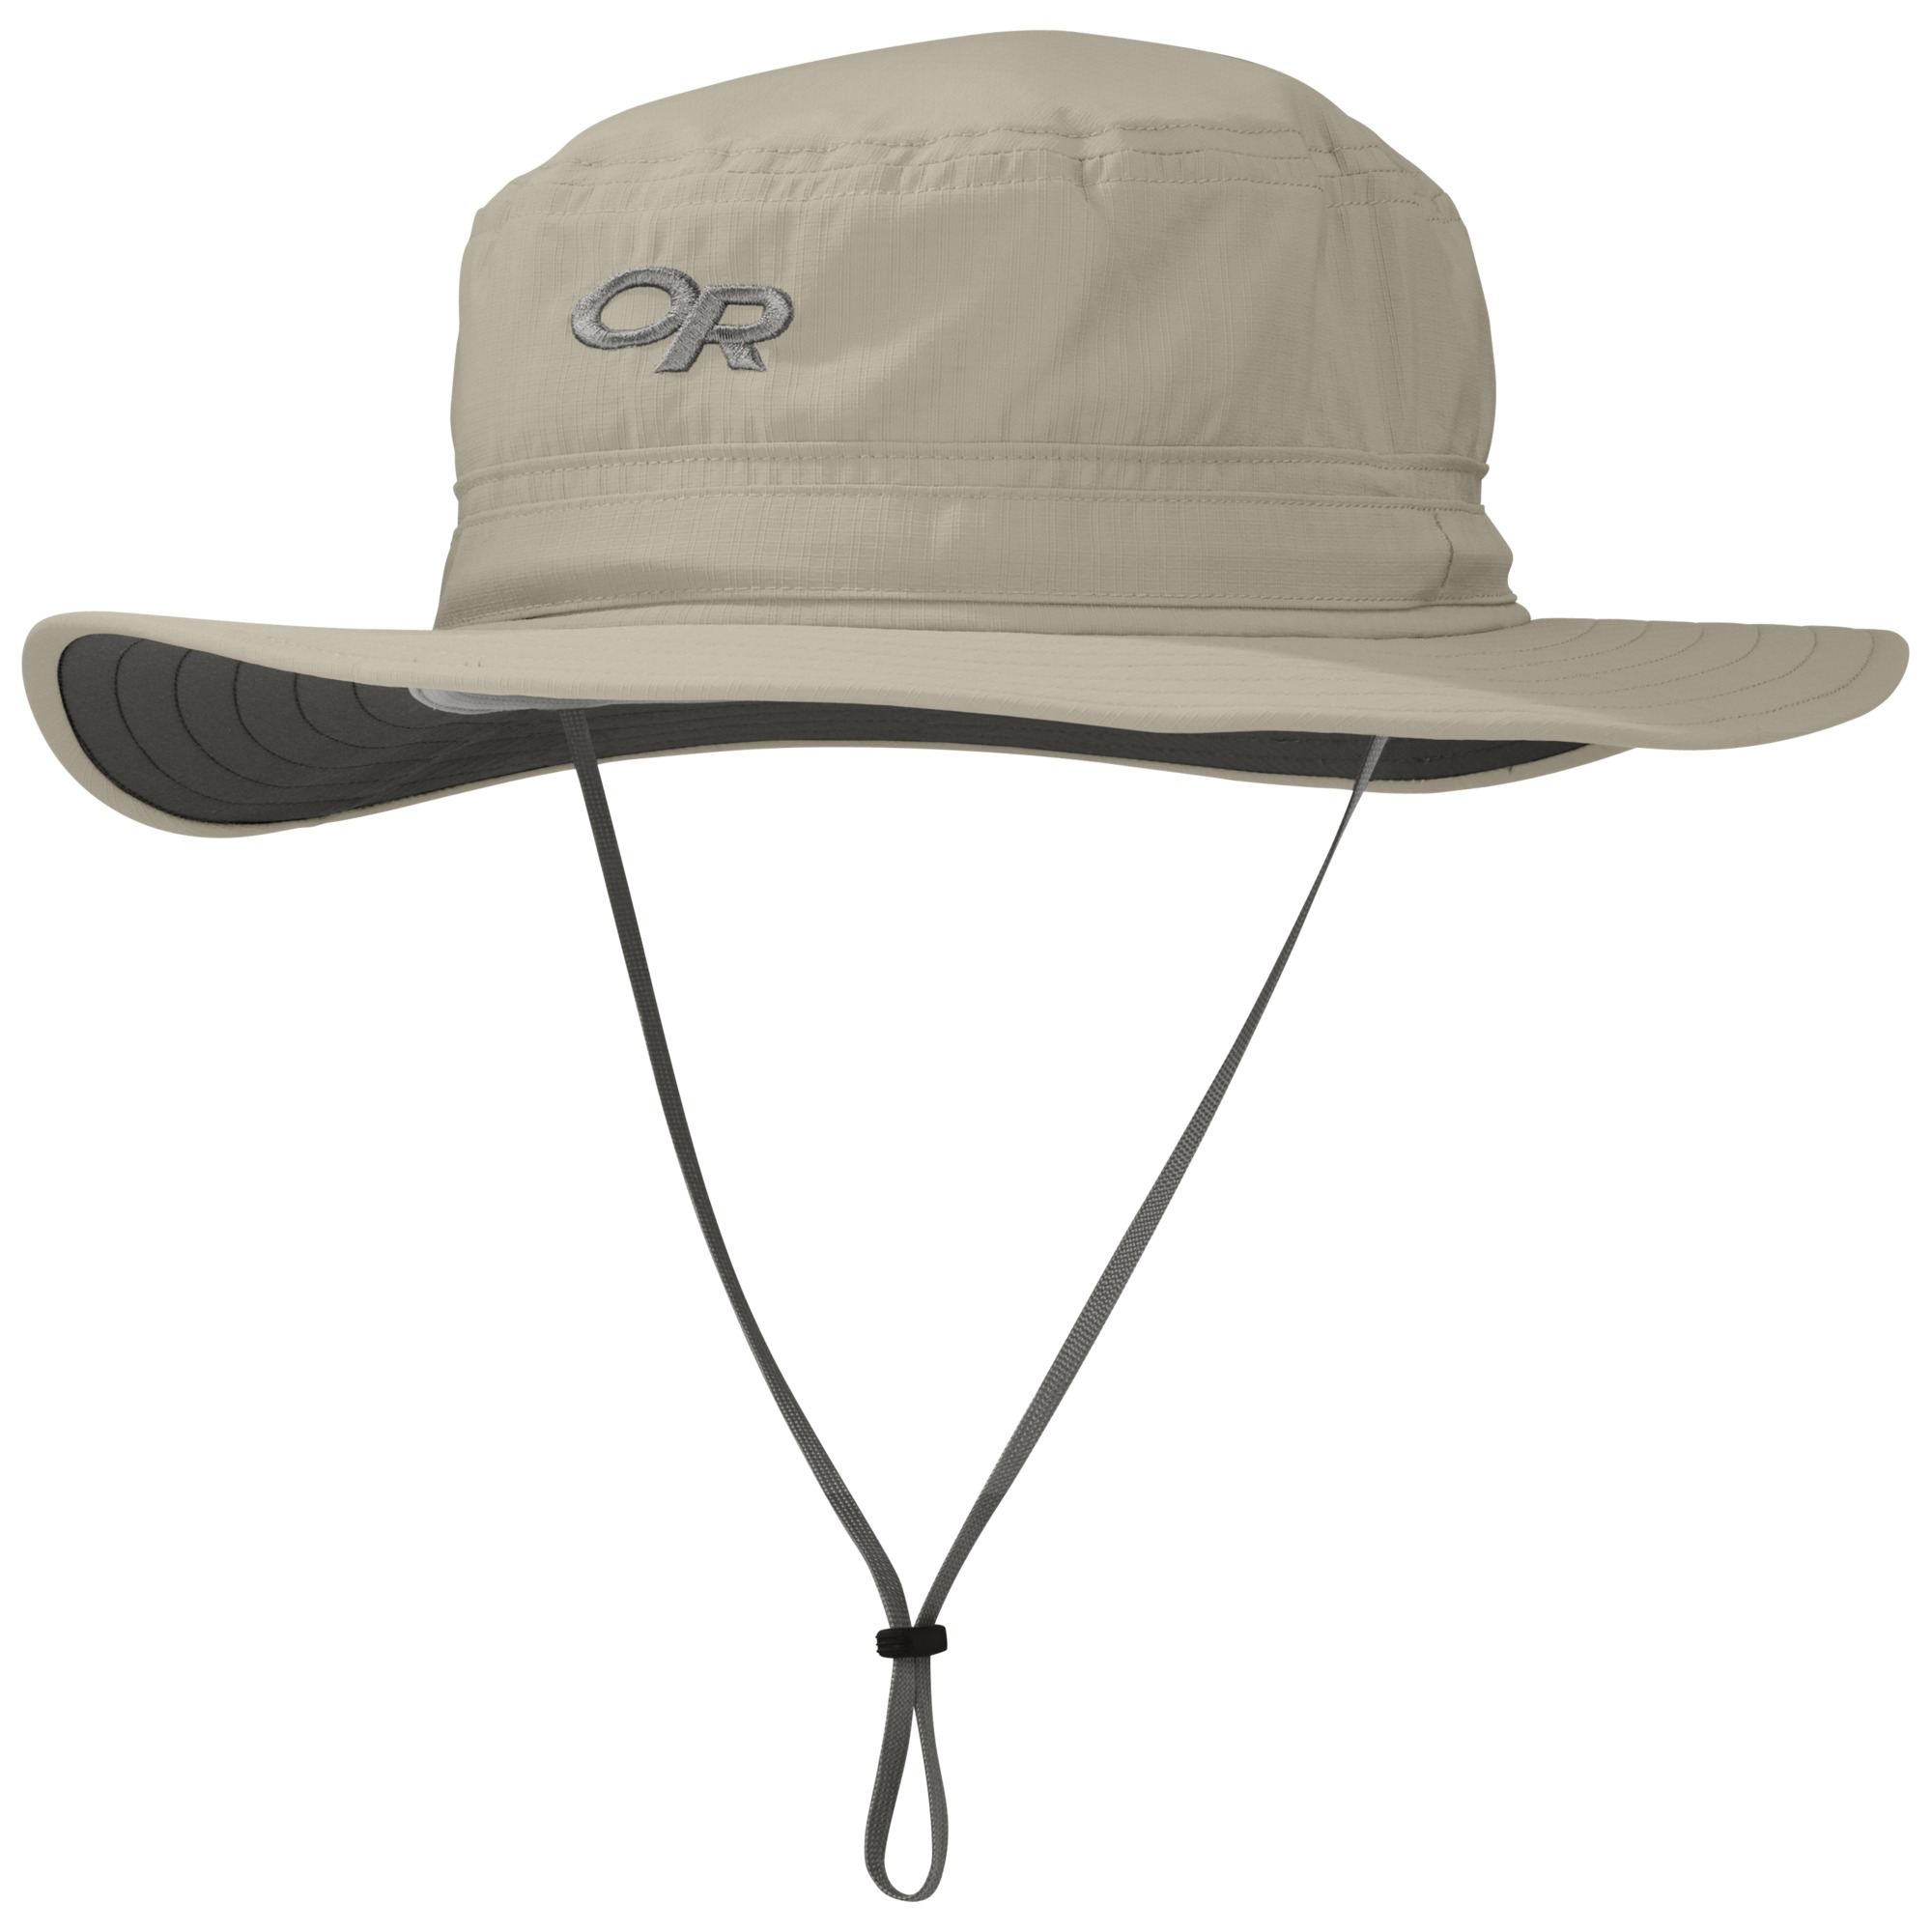 fcc5738aa91ee7 Helios Sun Hat - khaki | Outdoor Research